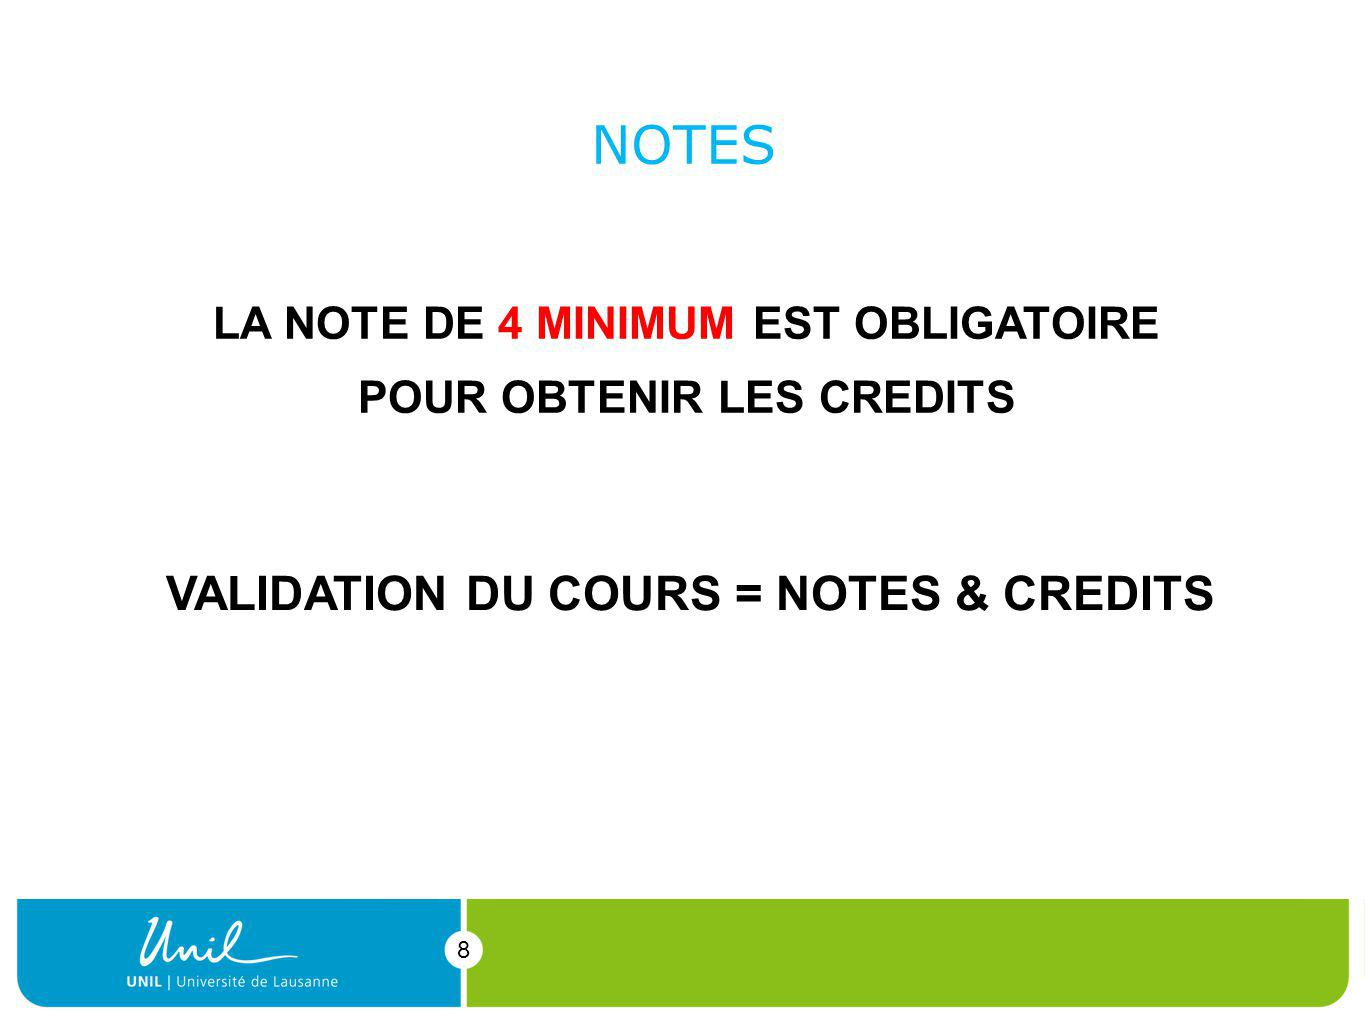 8 NOTES 8 LA NOTE DE 4 MINIMUM EST OBLIGATOIRE POUR OBTENIR LES CREDITS VALIDATION DU COURS = NOTES & CREDITS